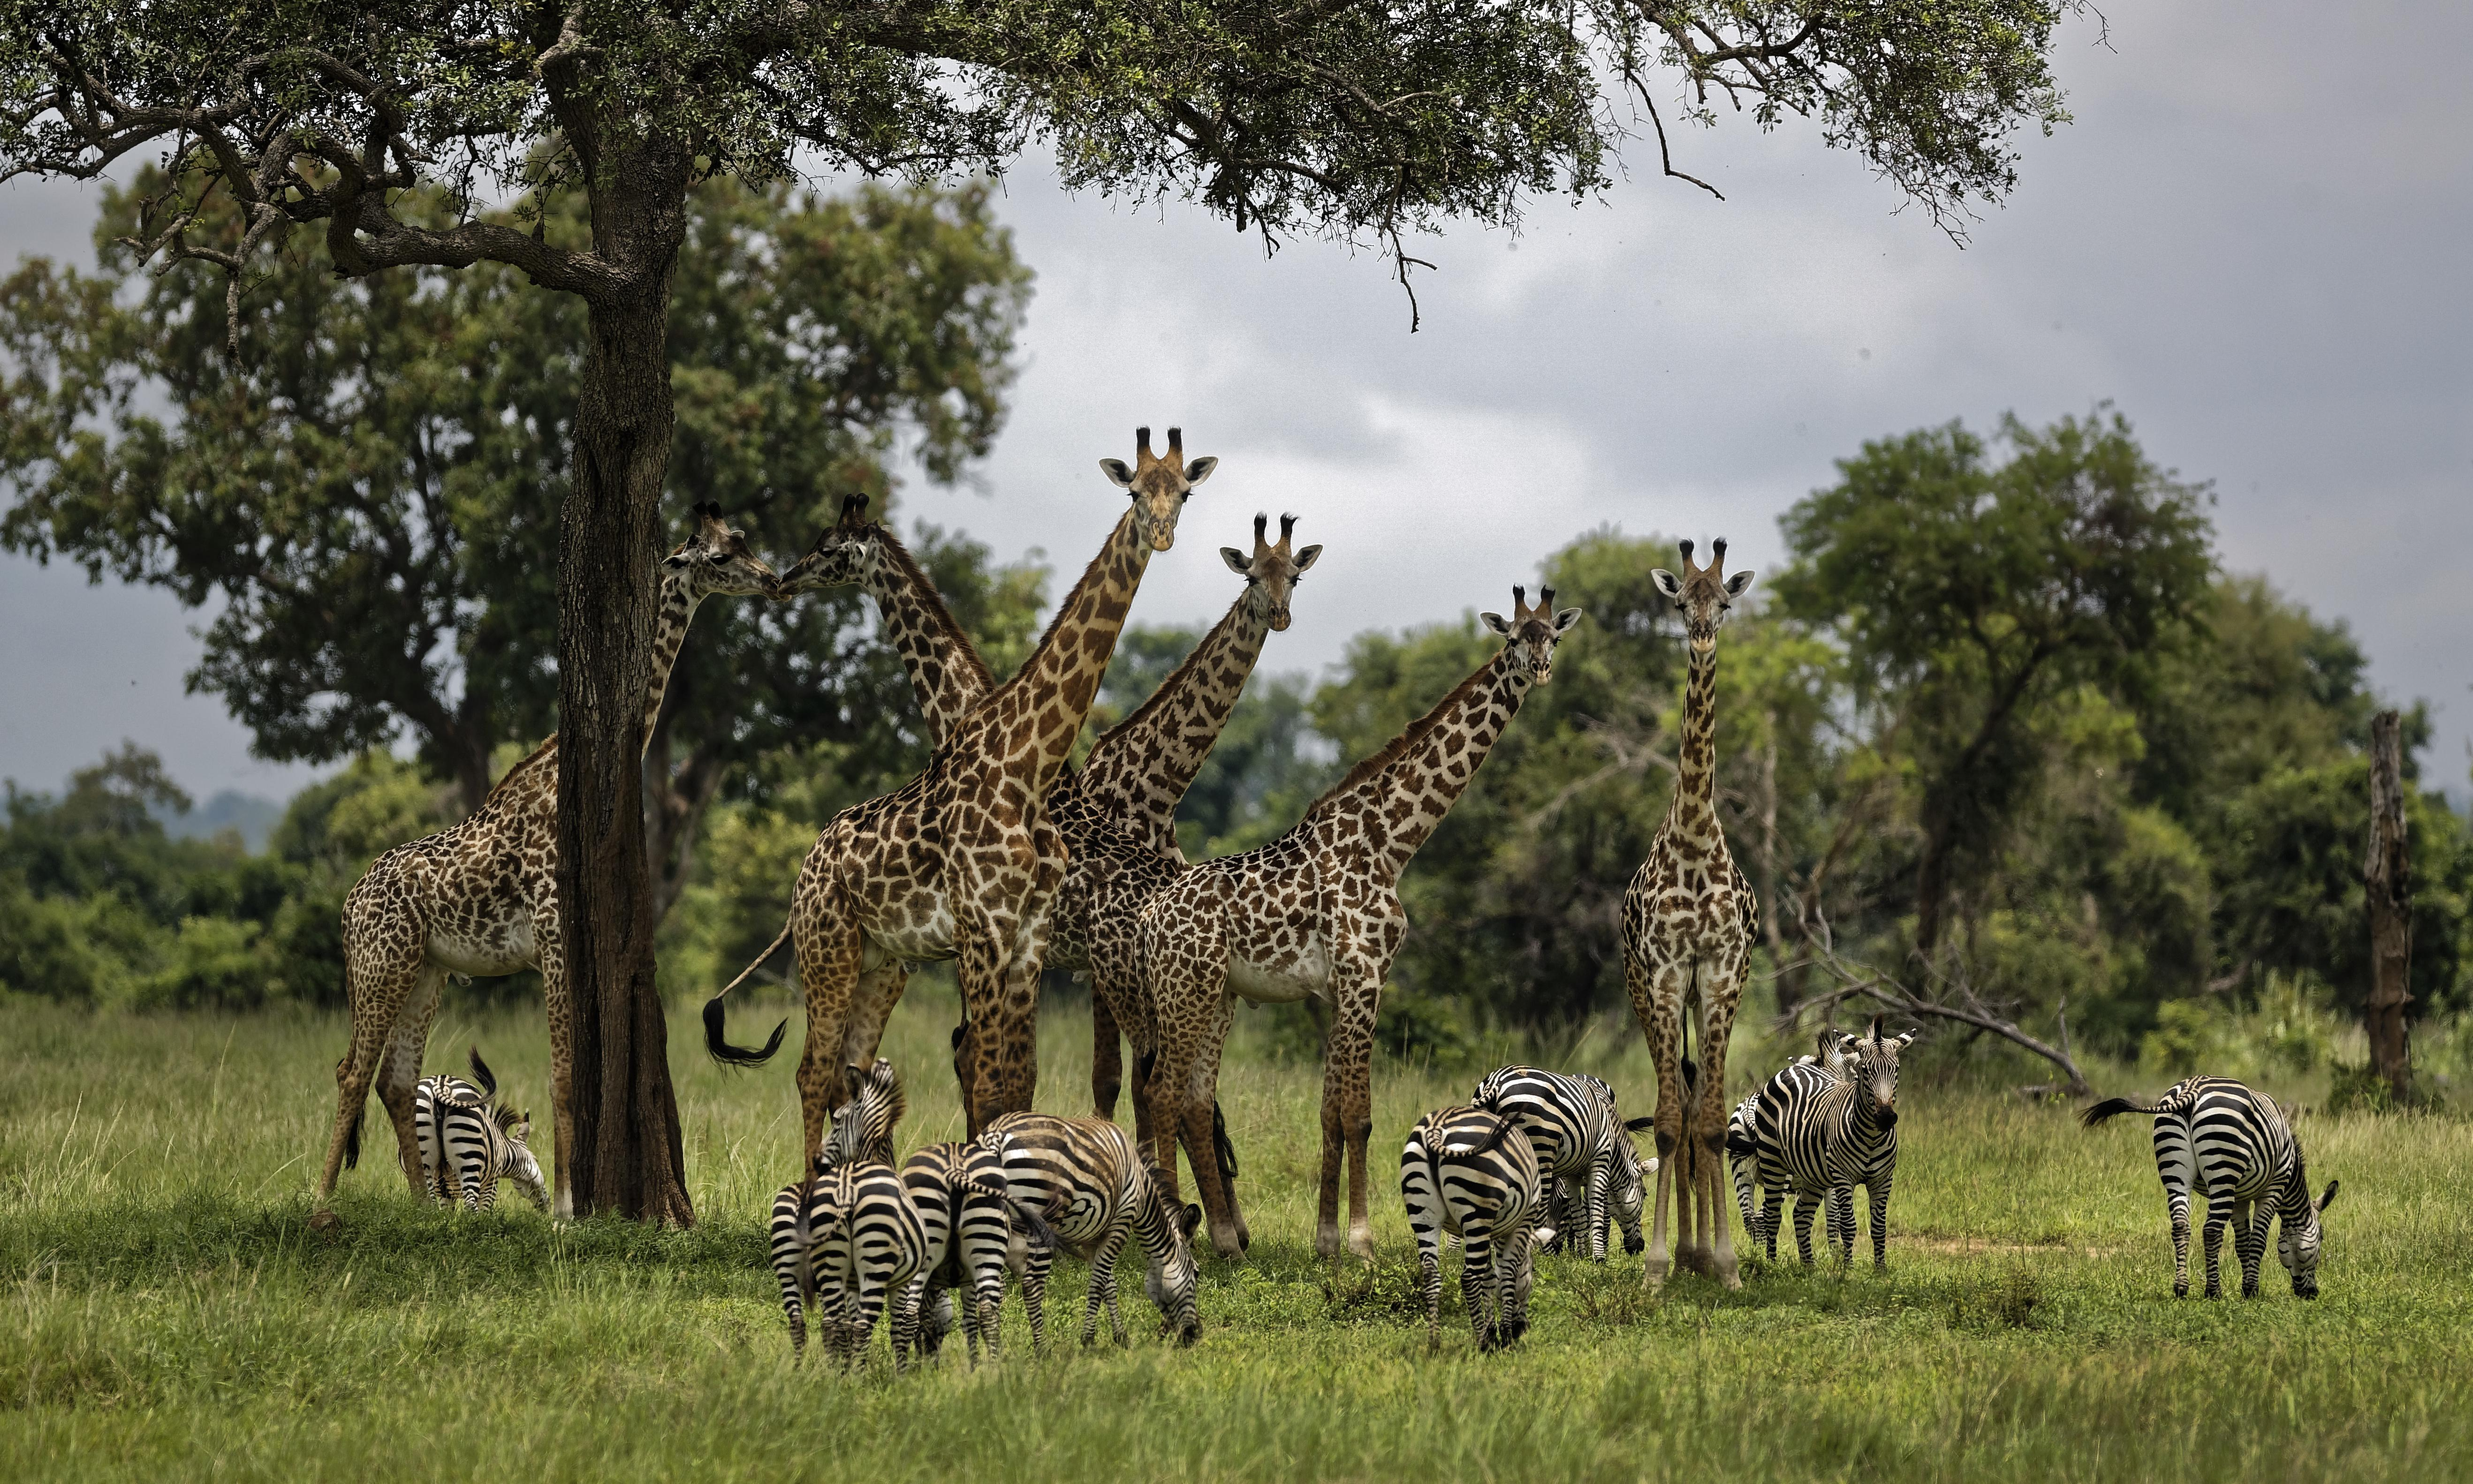 'Silent extinction': Cites wildlife summit agrees to giraffe protections